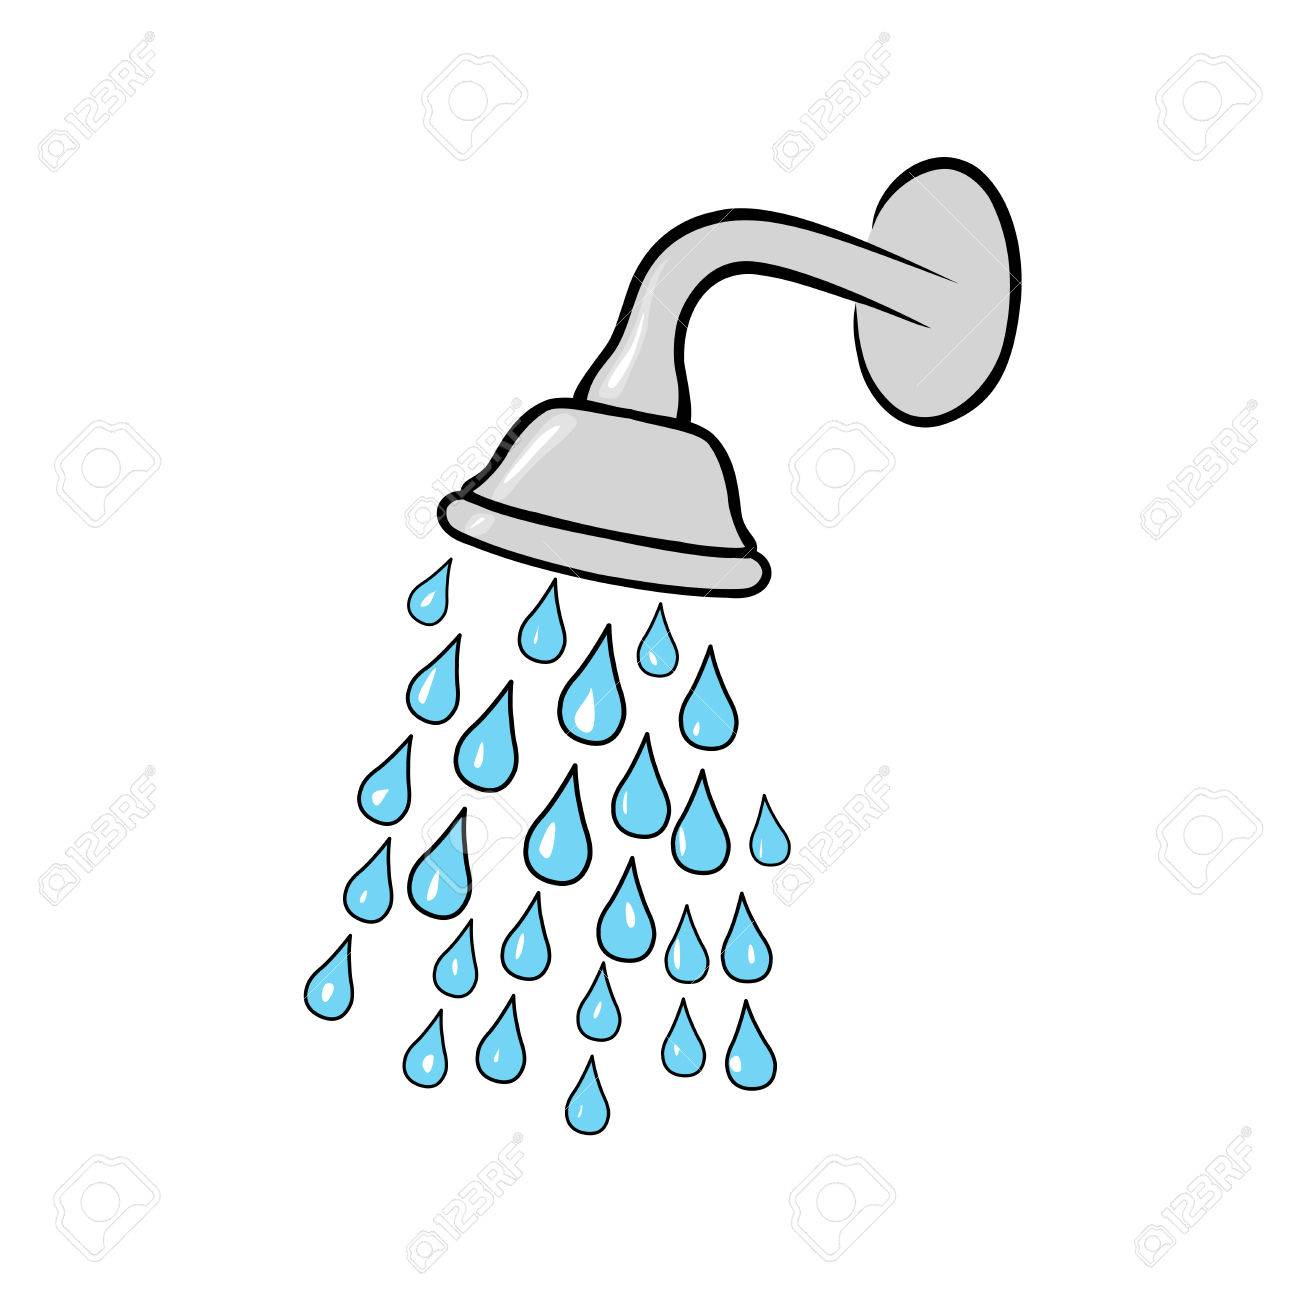 Shower Head Royalty Free Cliparts, Vectors, And Stock Illustration ...